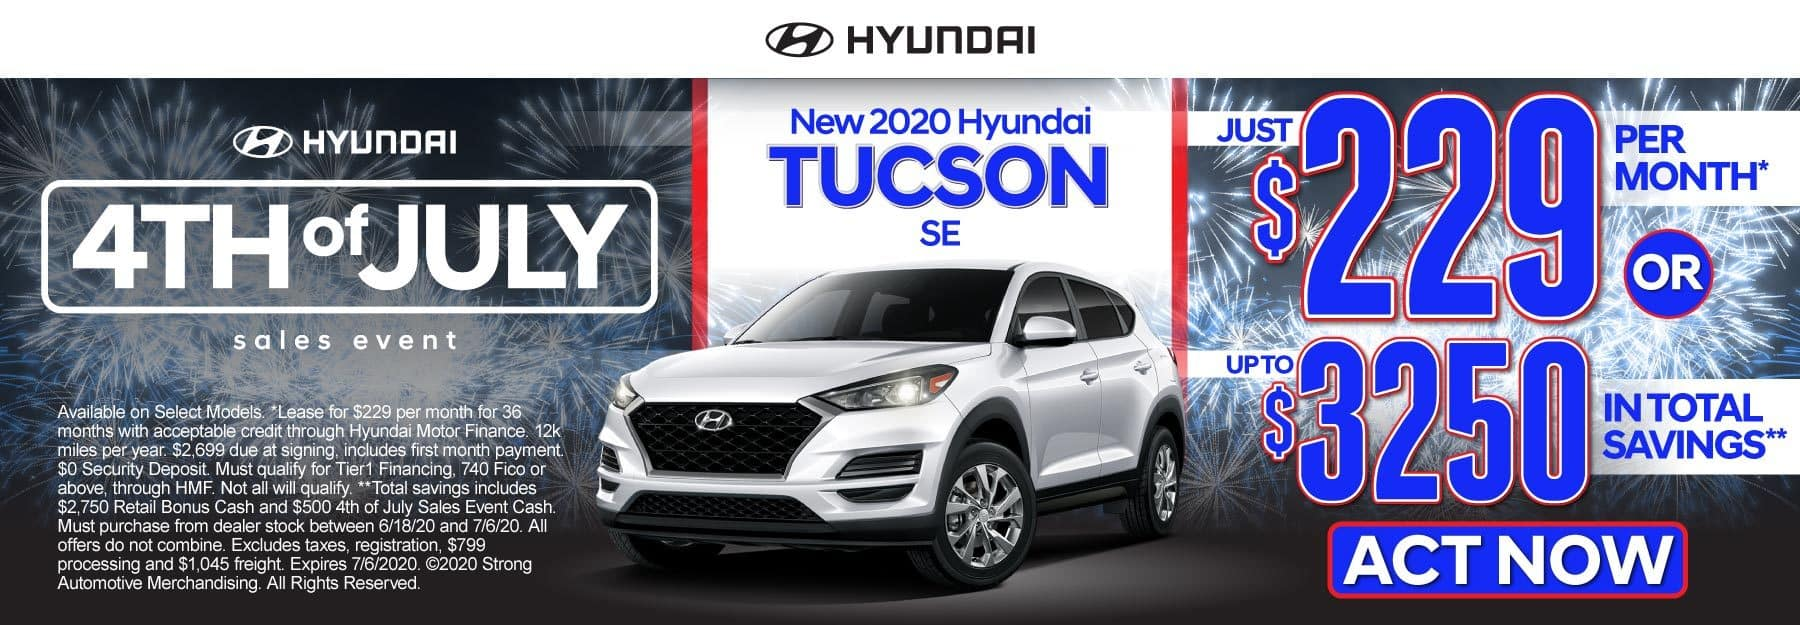 New 2020 Hyundai Tucson - Just $229 per month or up to $3250 in total savings - Click to View Inventory